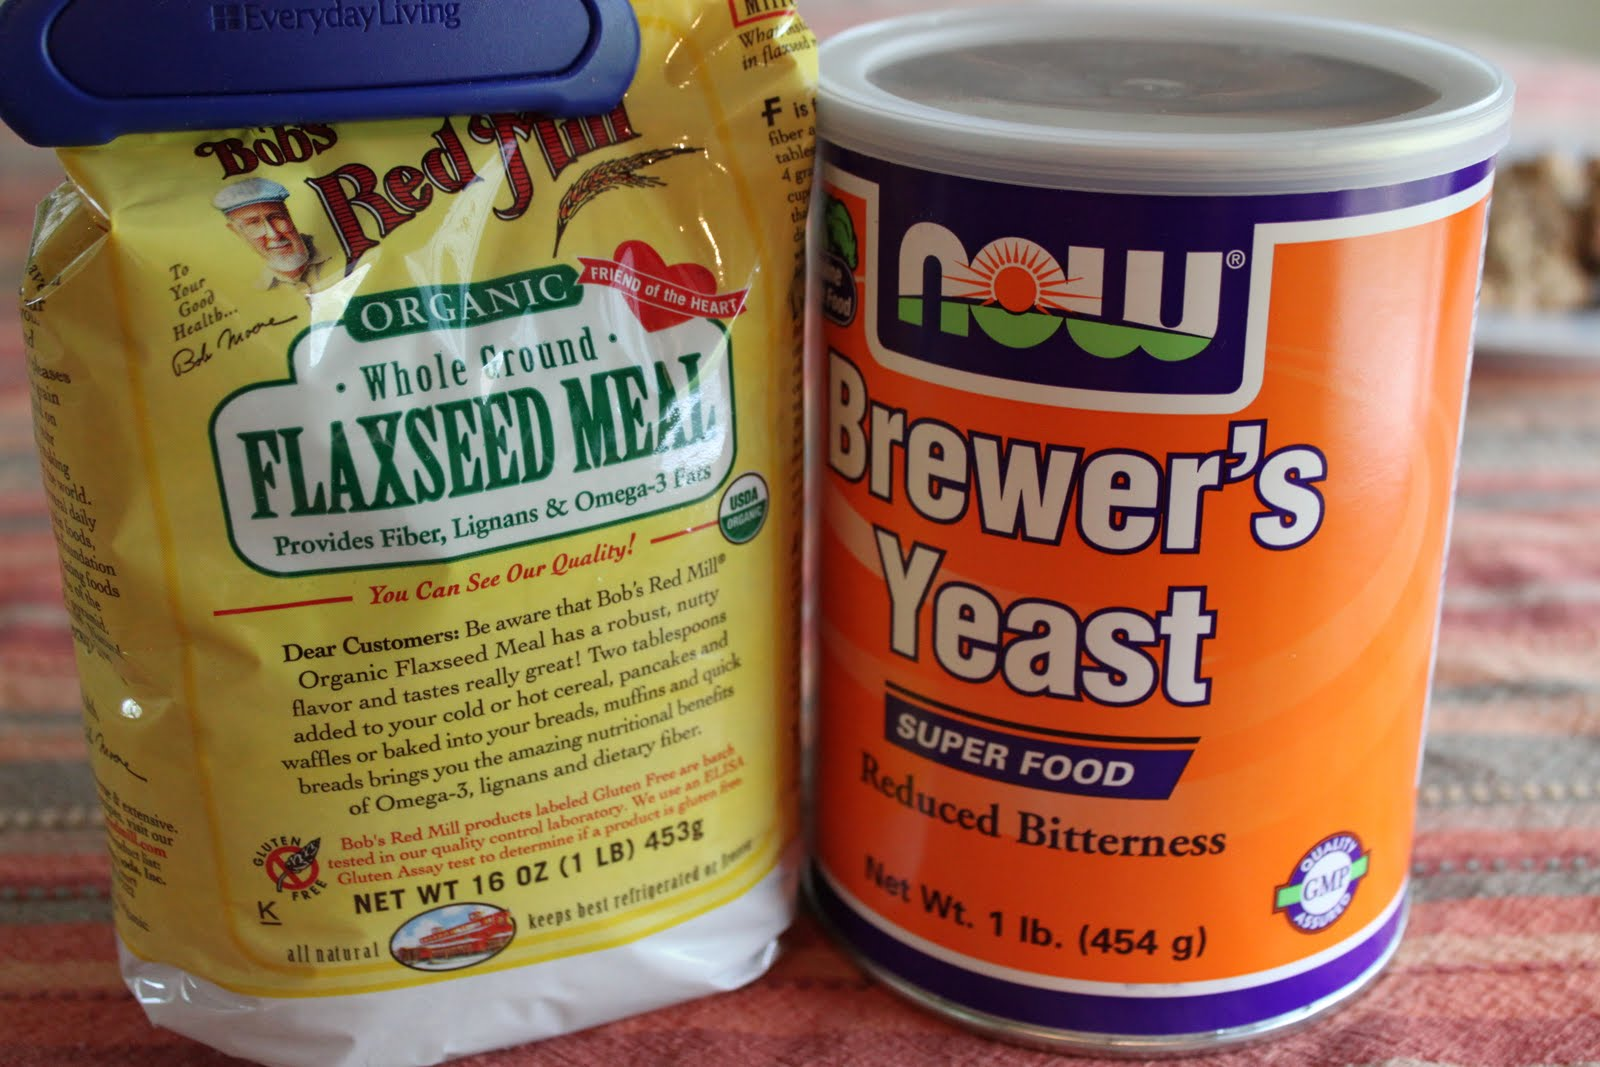 Brewers yeast lactation cookies recipe